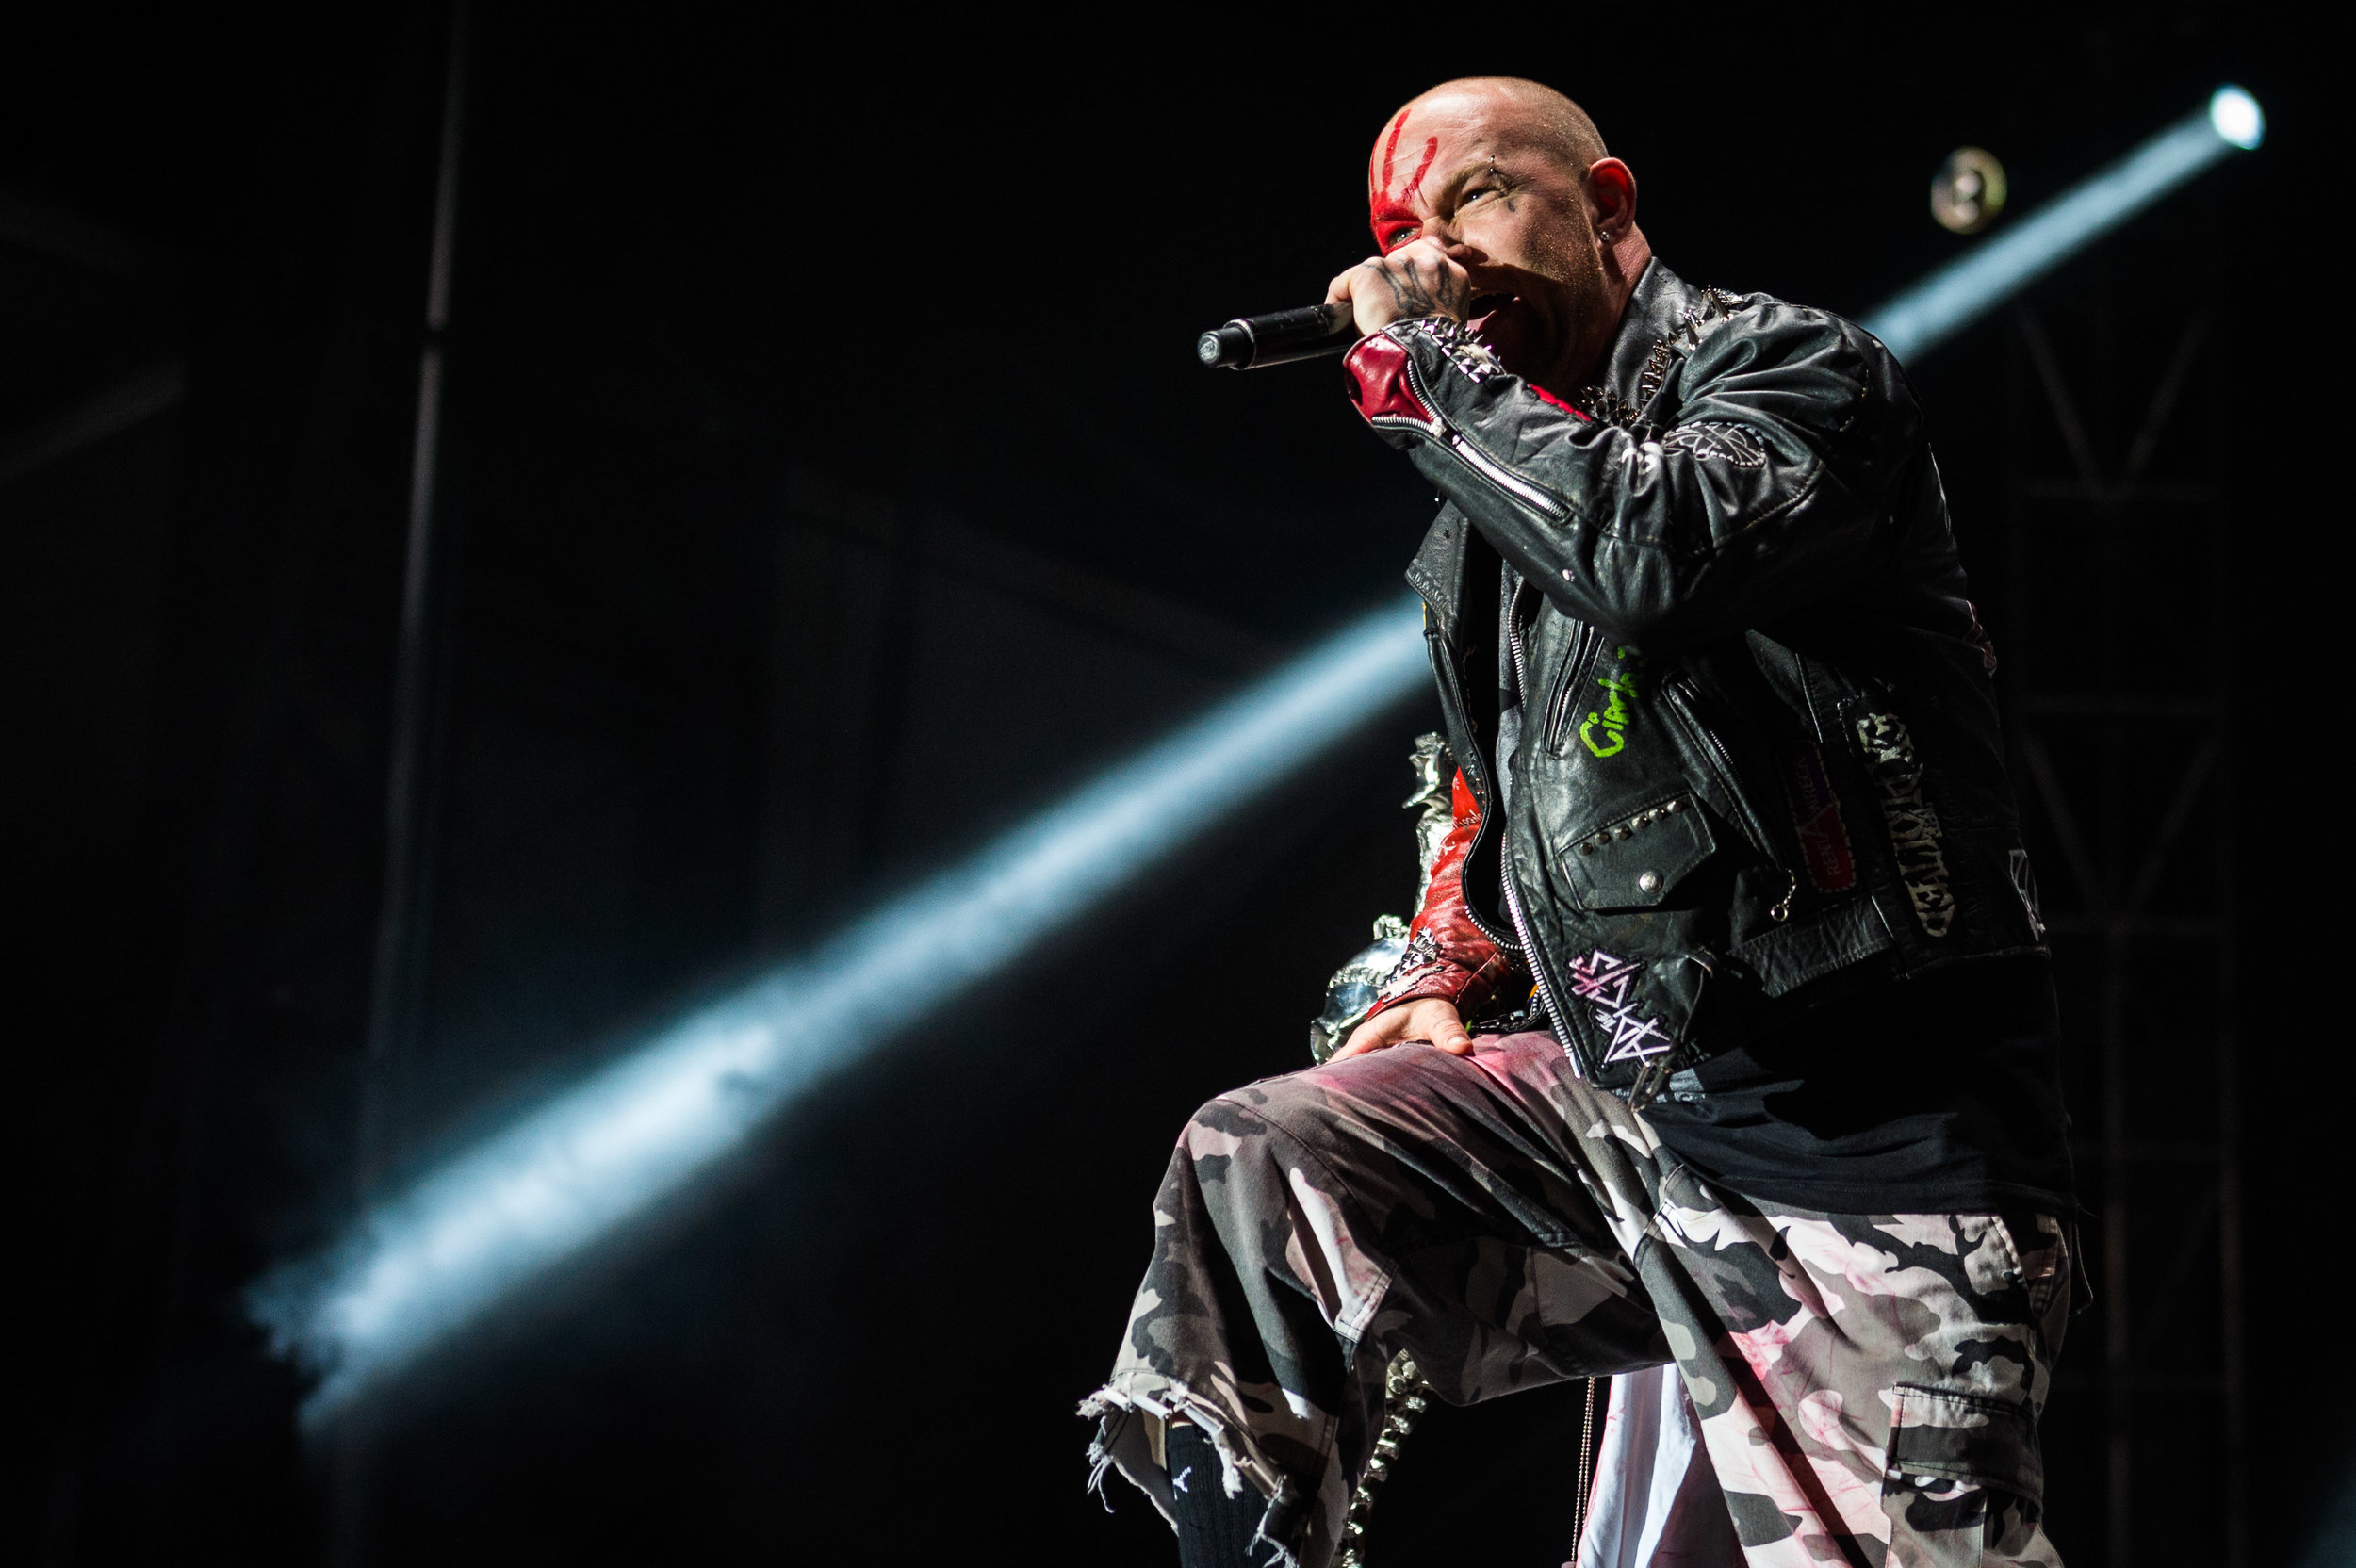 Five Finger Death Punch Sep 30 2017-8.jpg